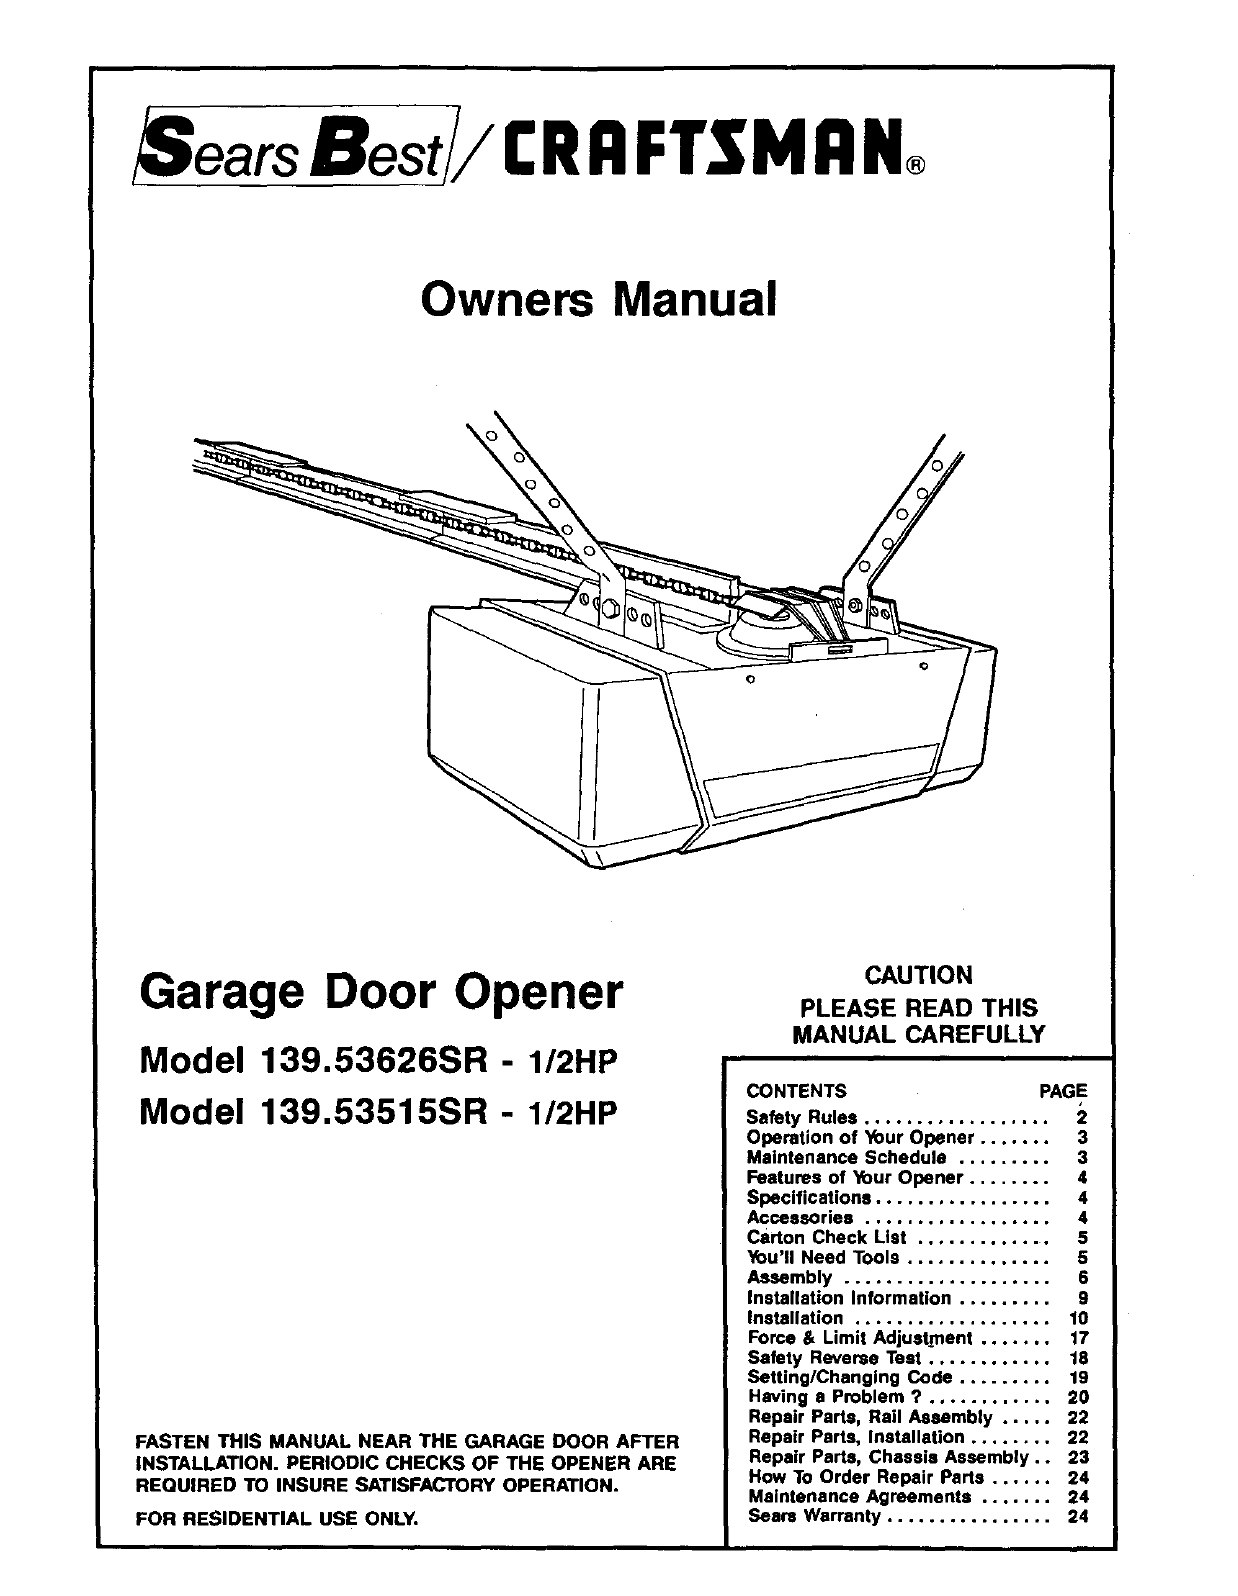 6e97bce9 7ab4 4d1d 9173 64e7868174d5 bg1 craftsman garage door opener 139 53515sr i 2hp user guide craftsman garage door sensor wiring diagram at n-0.co